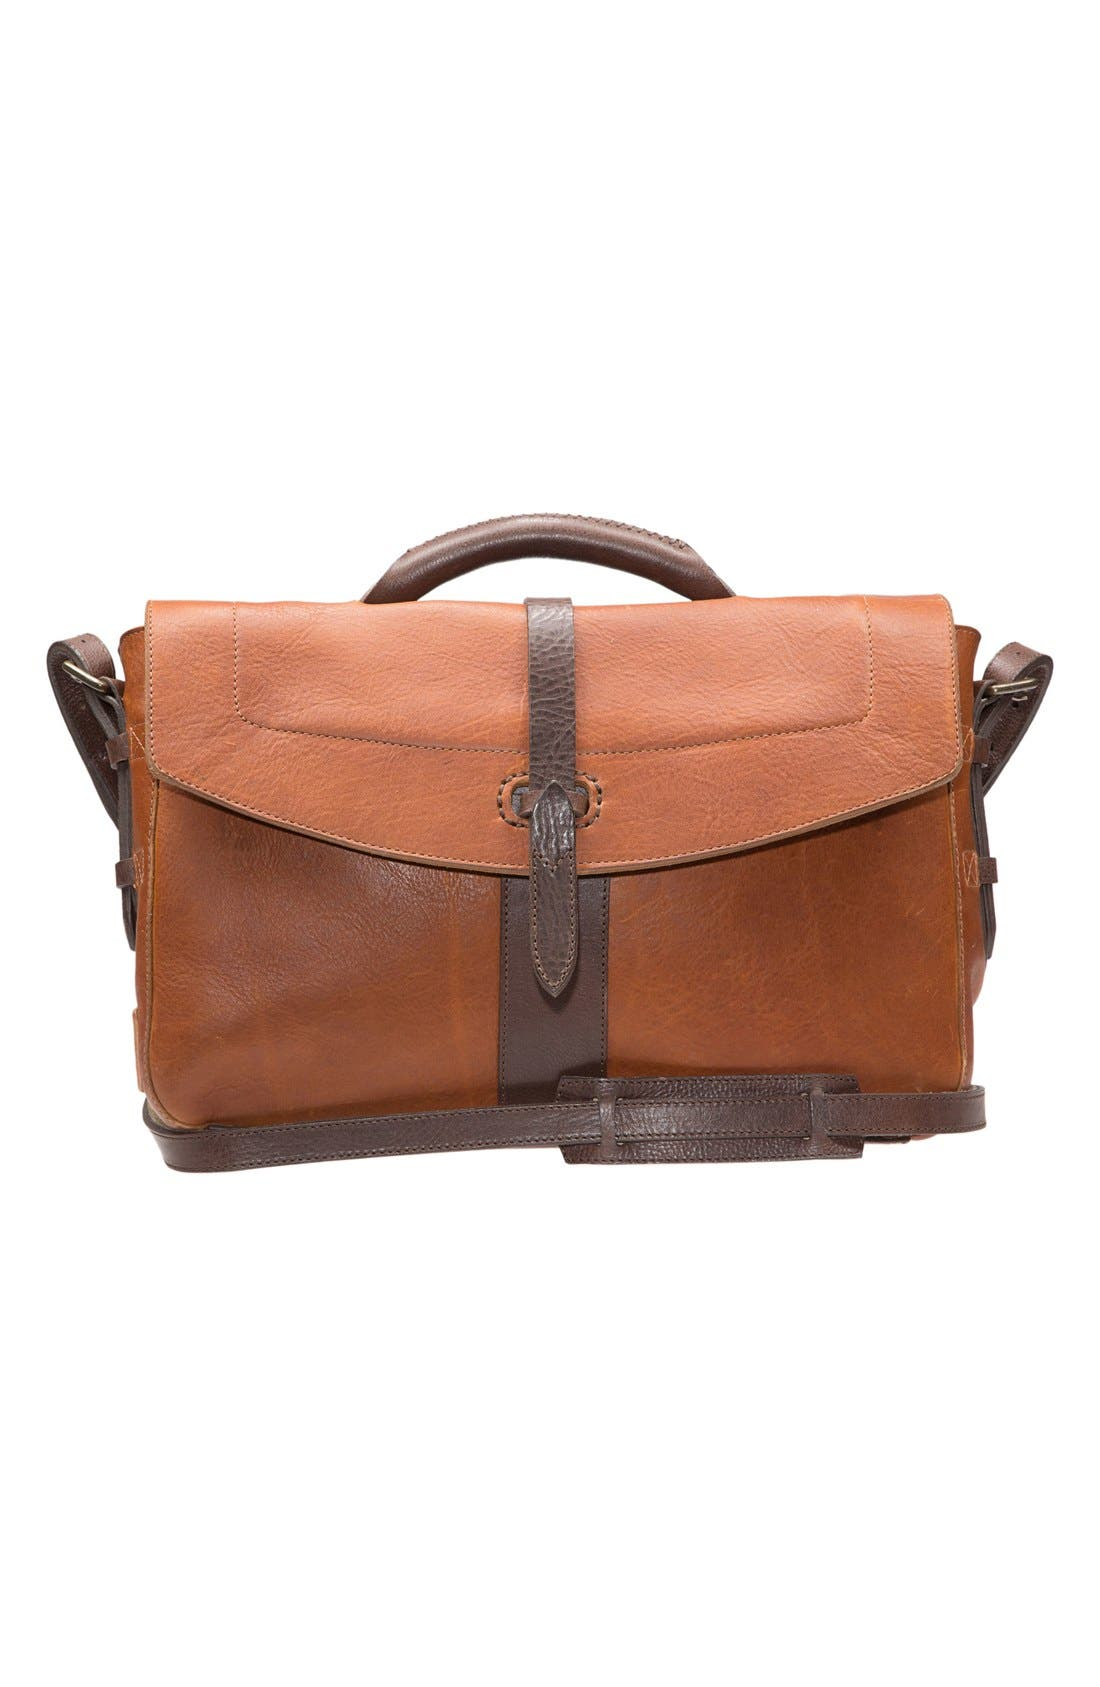 Alternate Image 1 Selected - Will Leather Goods 'Brandon' Leather Messenger Bag